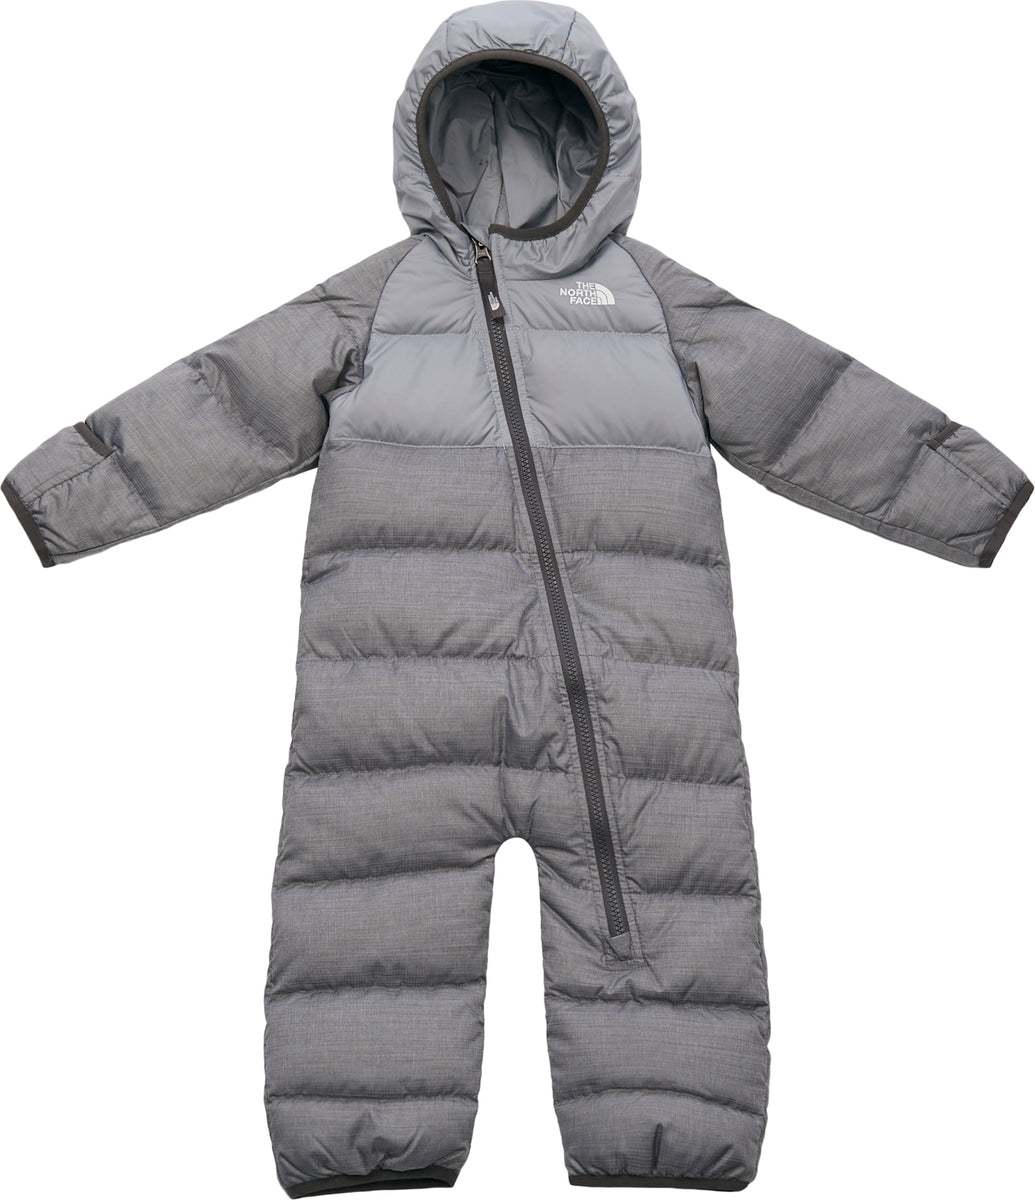 867023e94 The North Face Infant Lil' Snuggler Down Suit